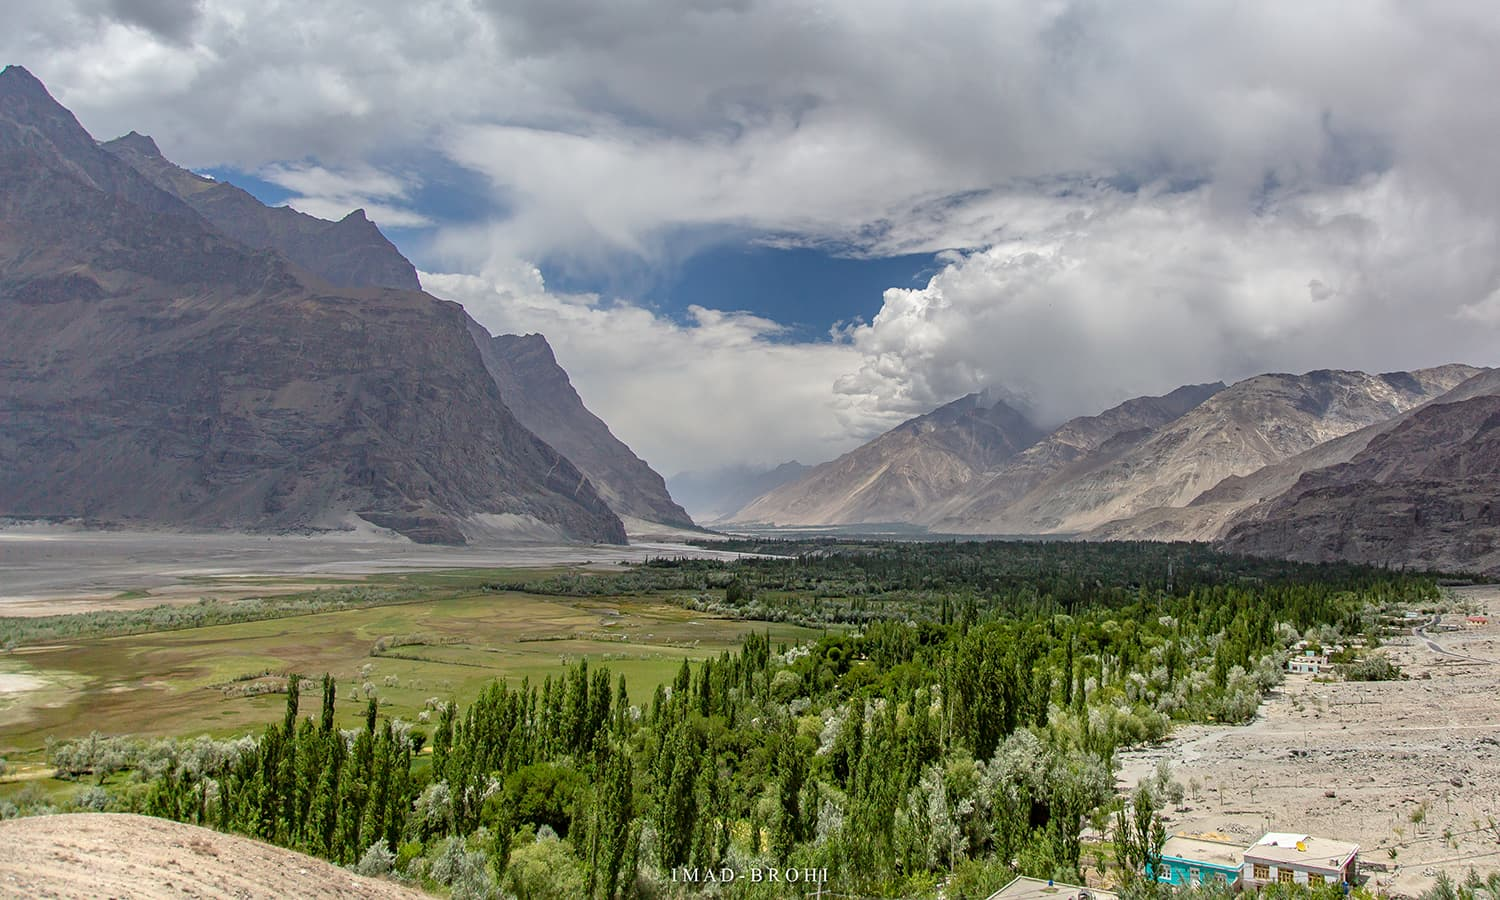 Passing the town of Shigar, 45 minutes from Skardu.